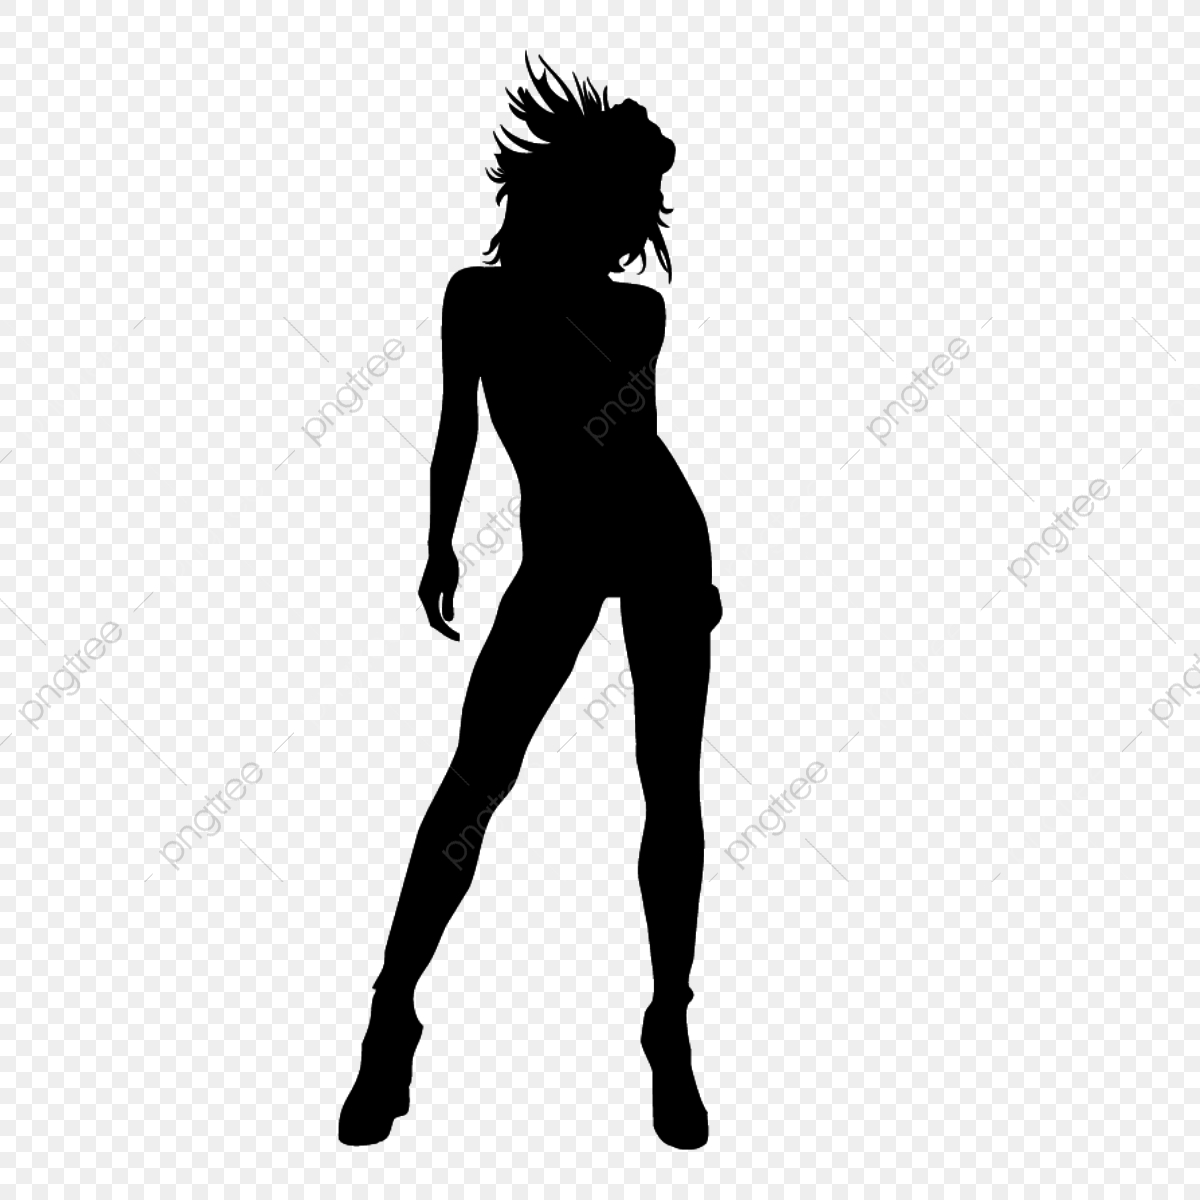 Female Silhouette Model, Family, Family Tree, Girl Dancing.